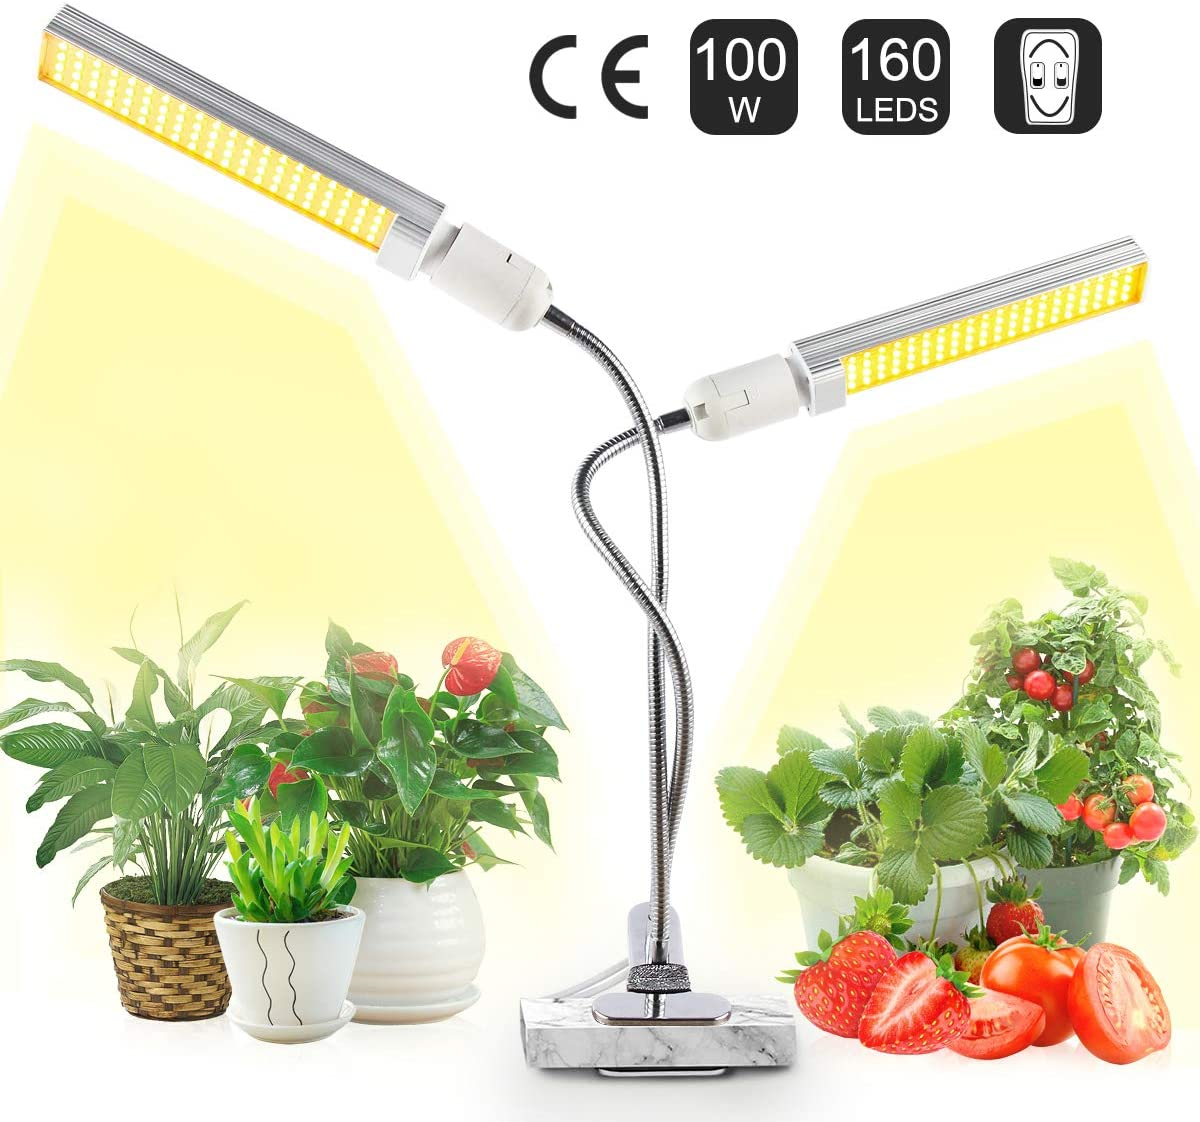 100W LED Grow Light for Indoor Plants, JEVDES 160PCS LED Sunlike Full Spectrum Plant Lights, Dual Head Plants Growing Lamp, Adjustable Gooseneck, for Seedling Growing Blooming Fruiting